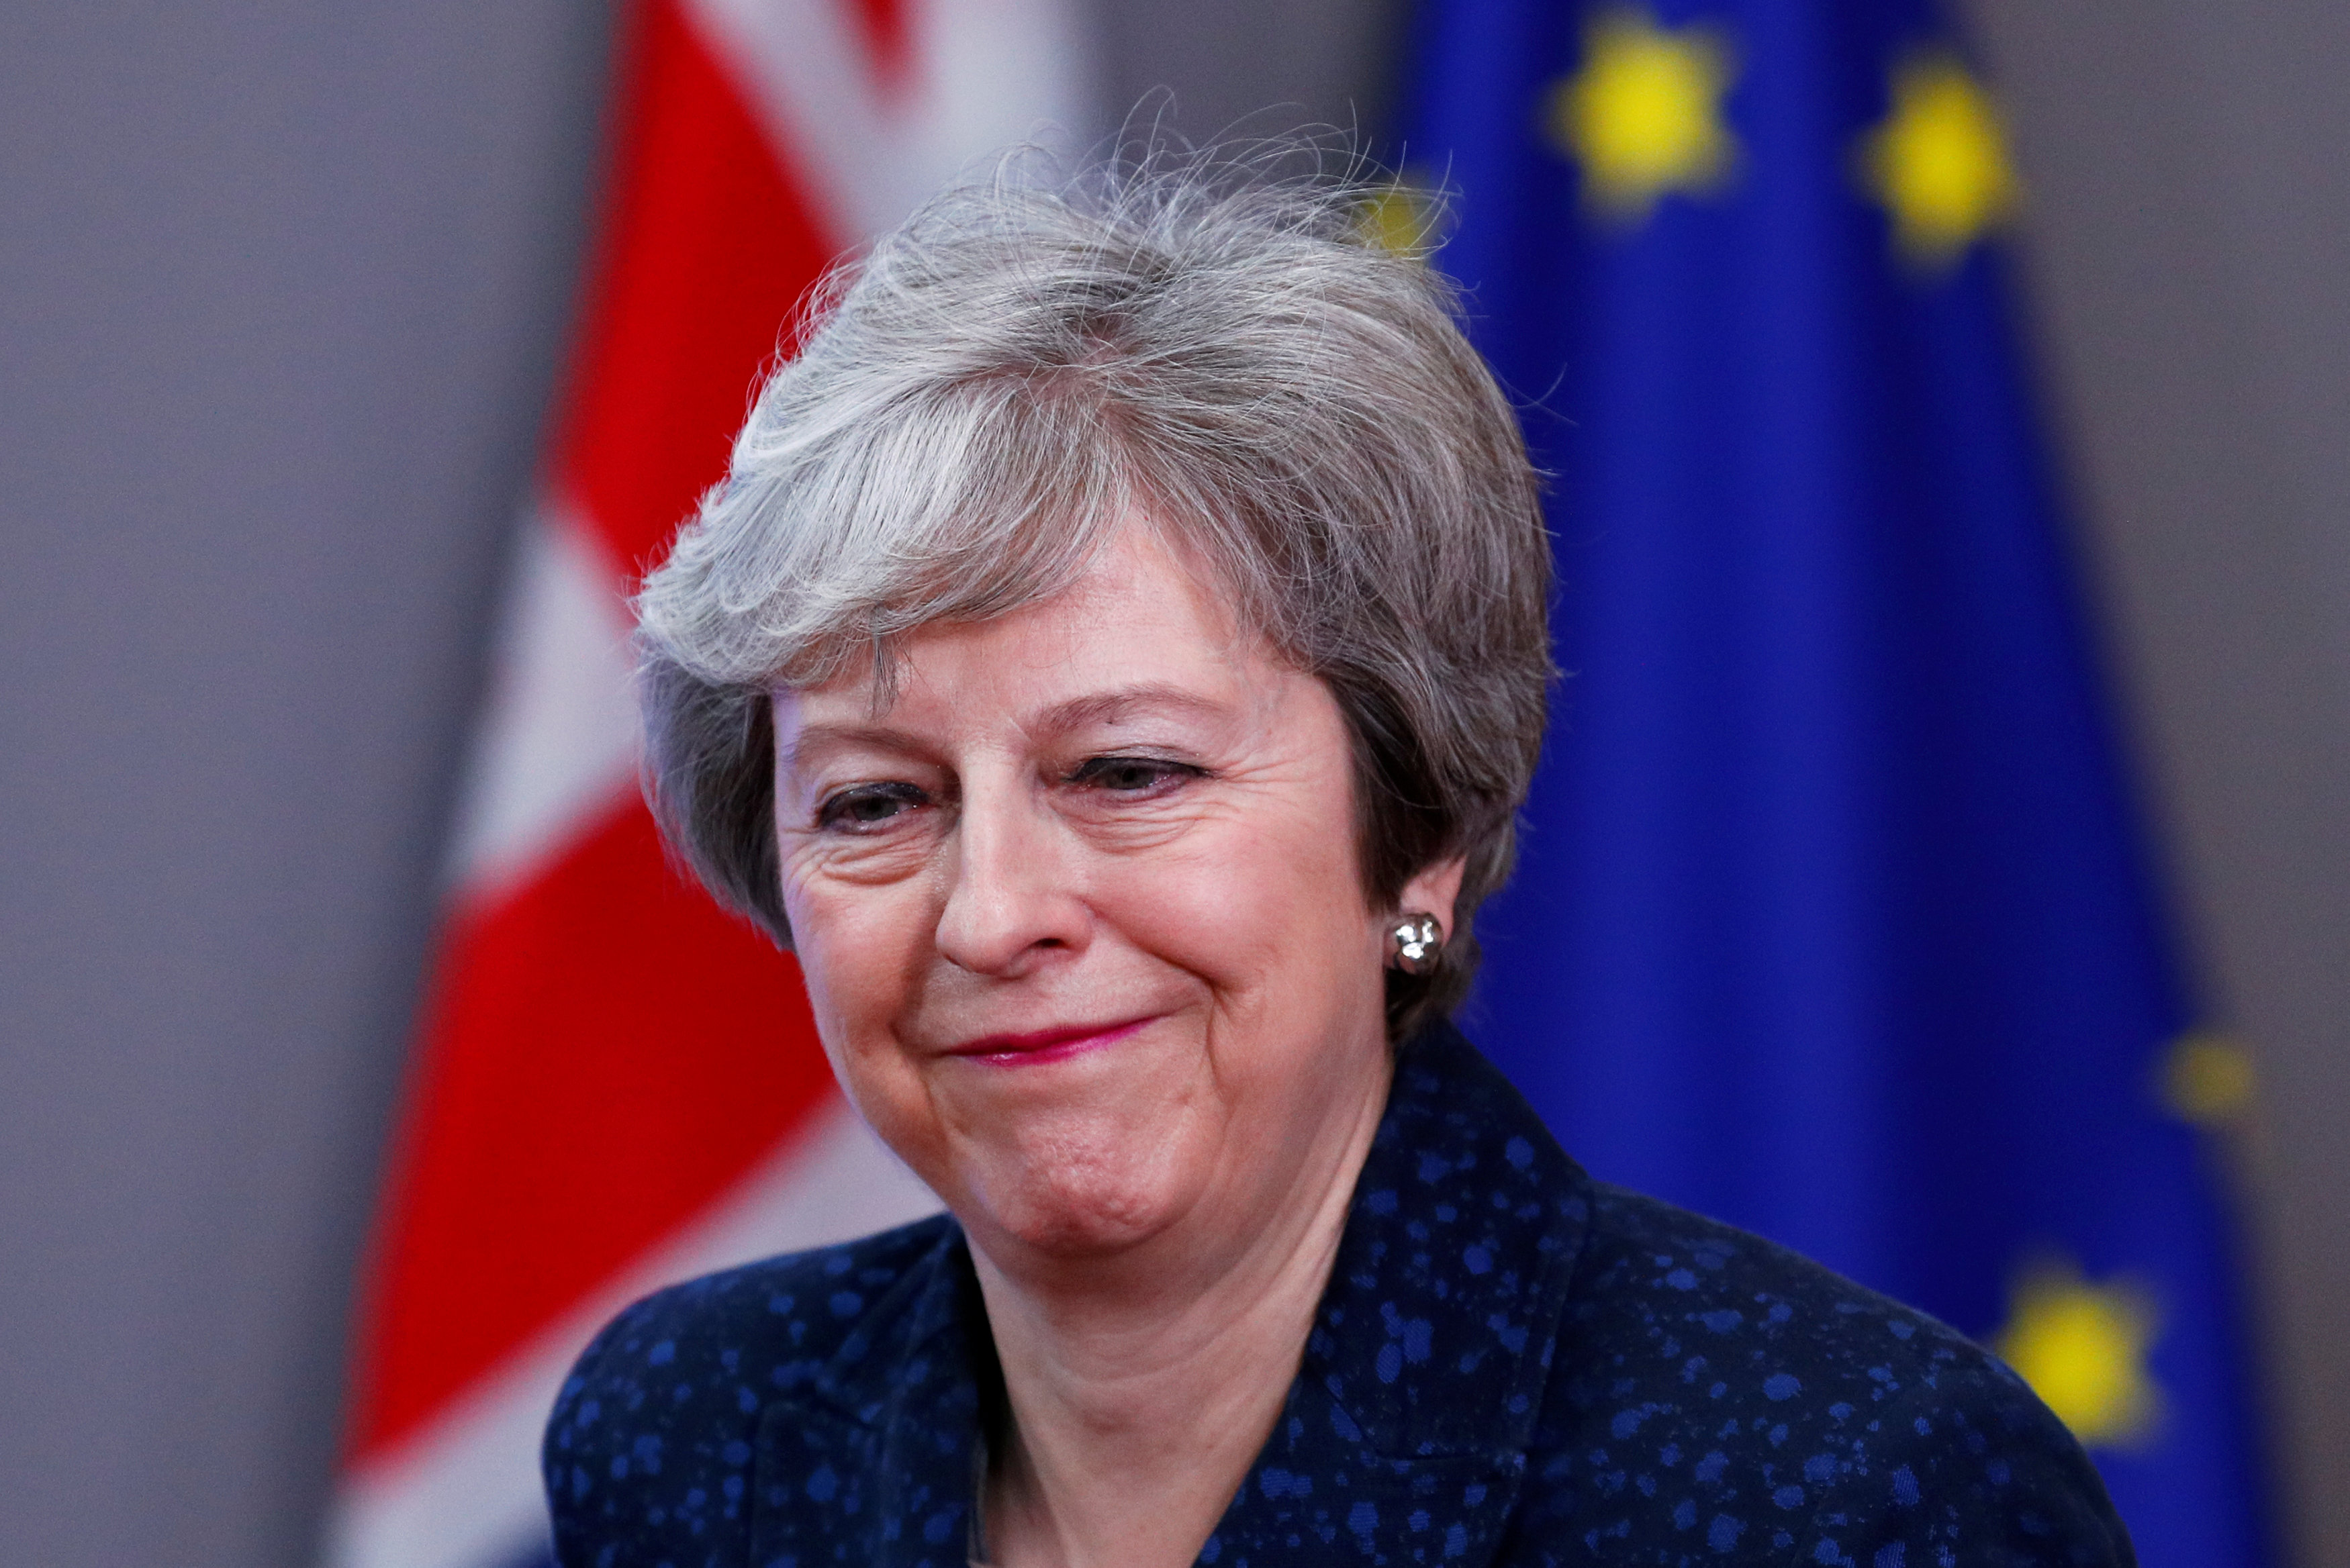 May Accused of Buying Brexit Votes With $2 Billion for Towns